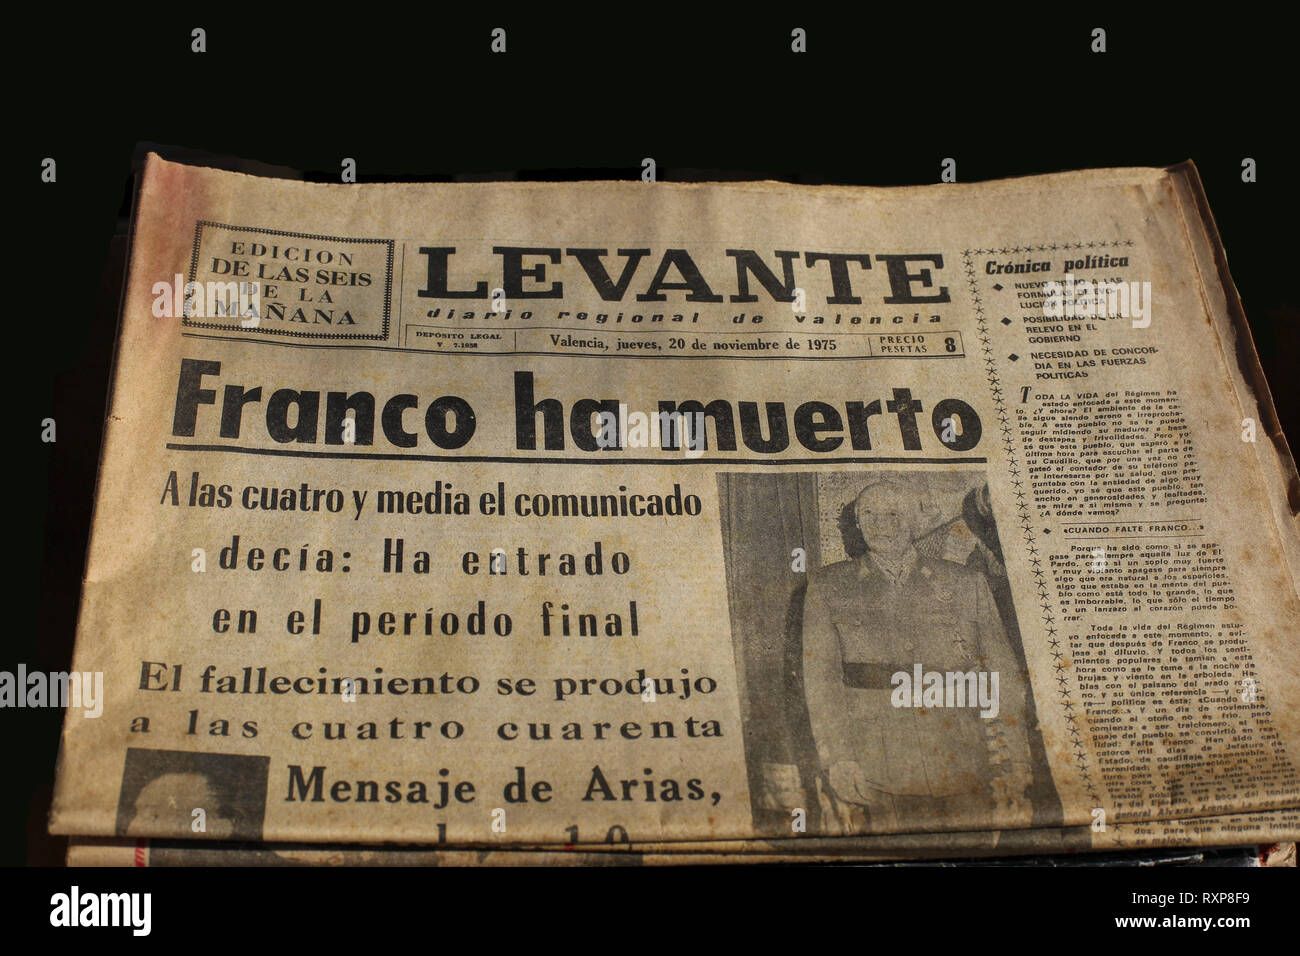 Old Spanish newspaper of 1975 with headline saying 'Franco has died'. Fascist dictator Franco died on November 20, 1975 after a dictatorship starting  - Stock Image